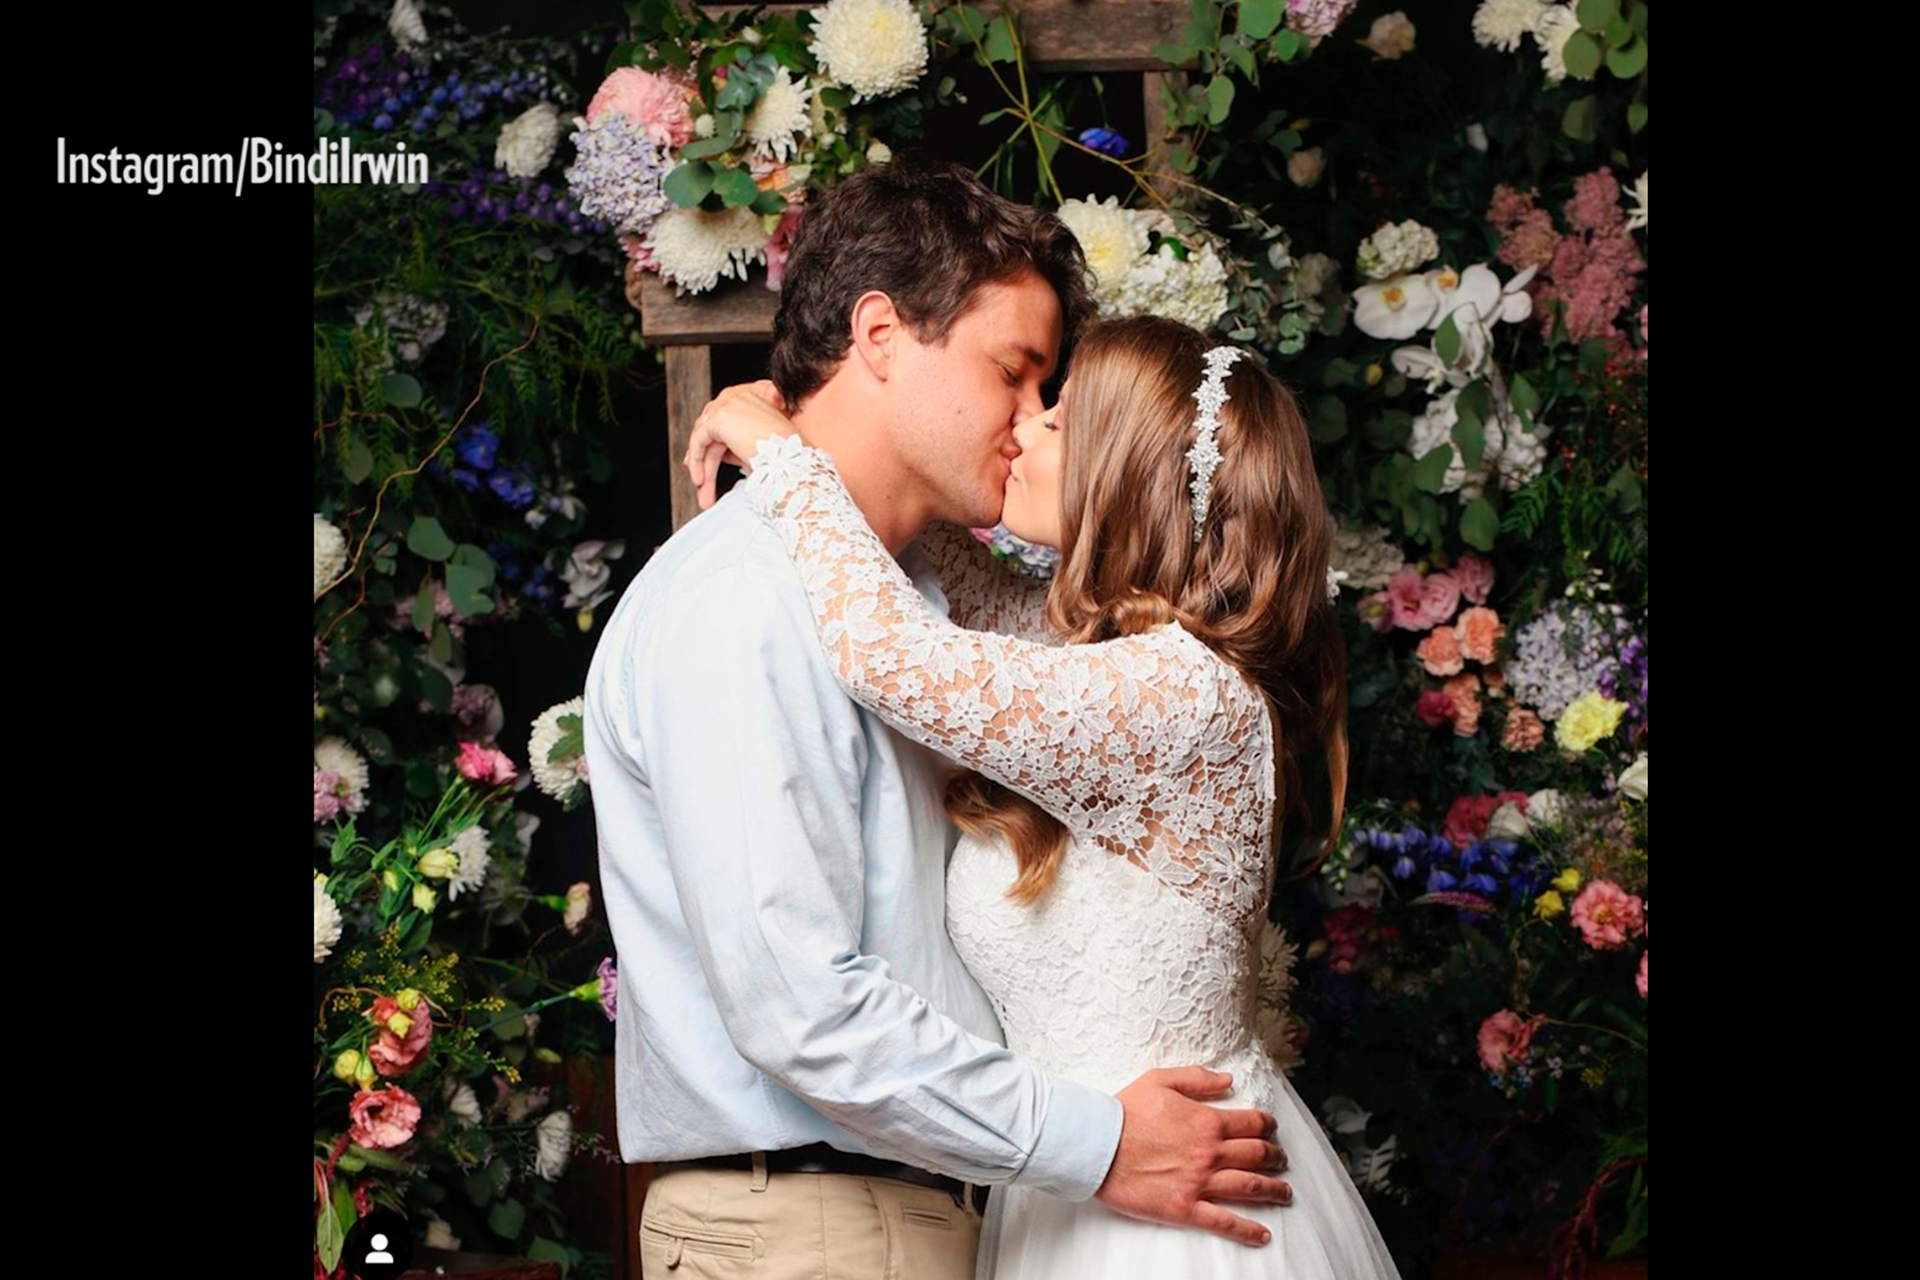 People Now: The Sweetest Photos from Bindi Irwin's Wedding and How She Honored Late Father Steve Irwin - Watch the Full Episode